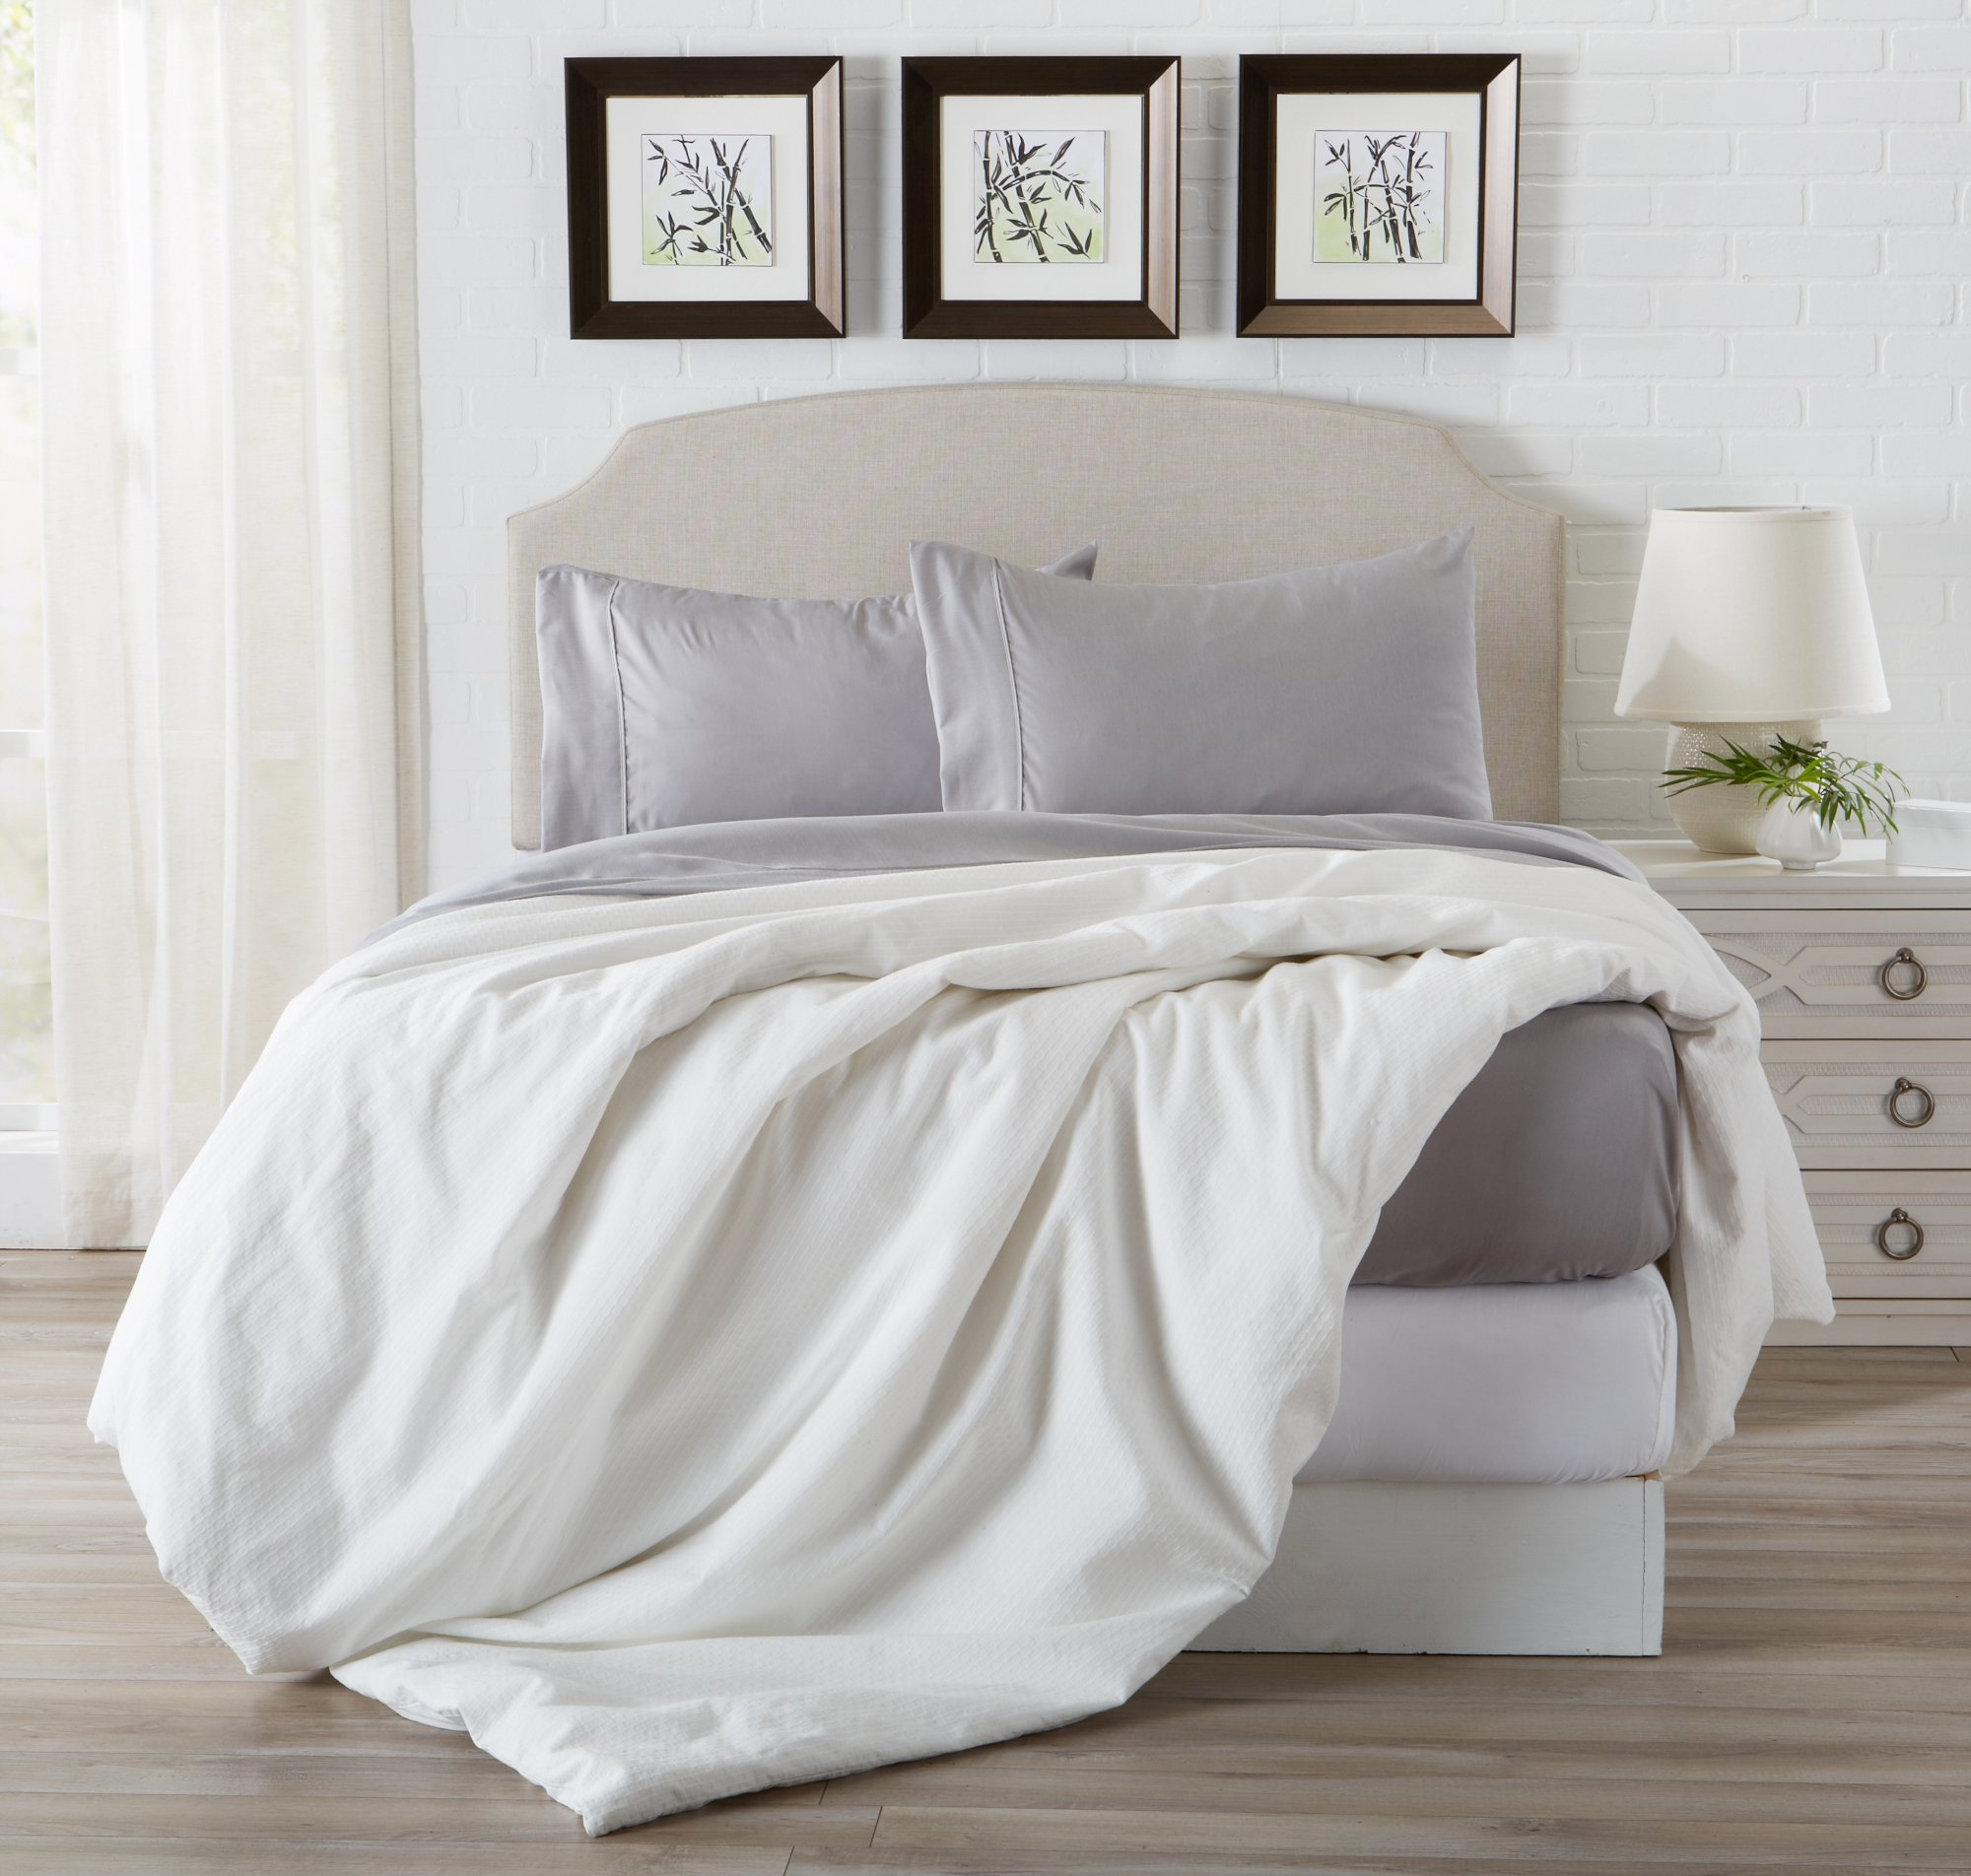 Great Bay Home Luxury Ultra Soft Bamboo Sheet Set. Spa-Quality, Comfortable, All-Season Bed Sheets. By Brand. (King, Paloma Grey) by Great Bay Home (Image #7)